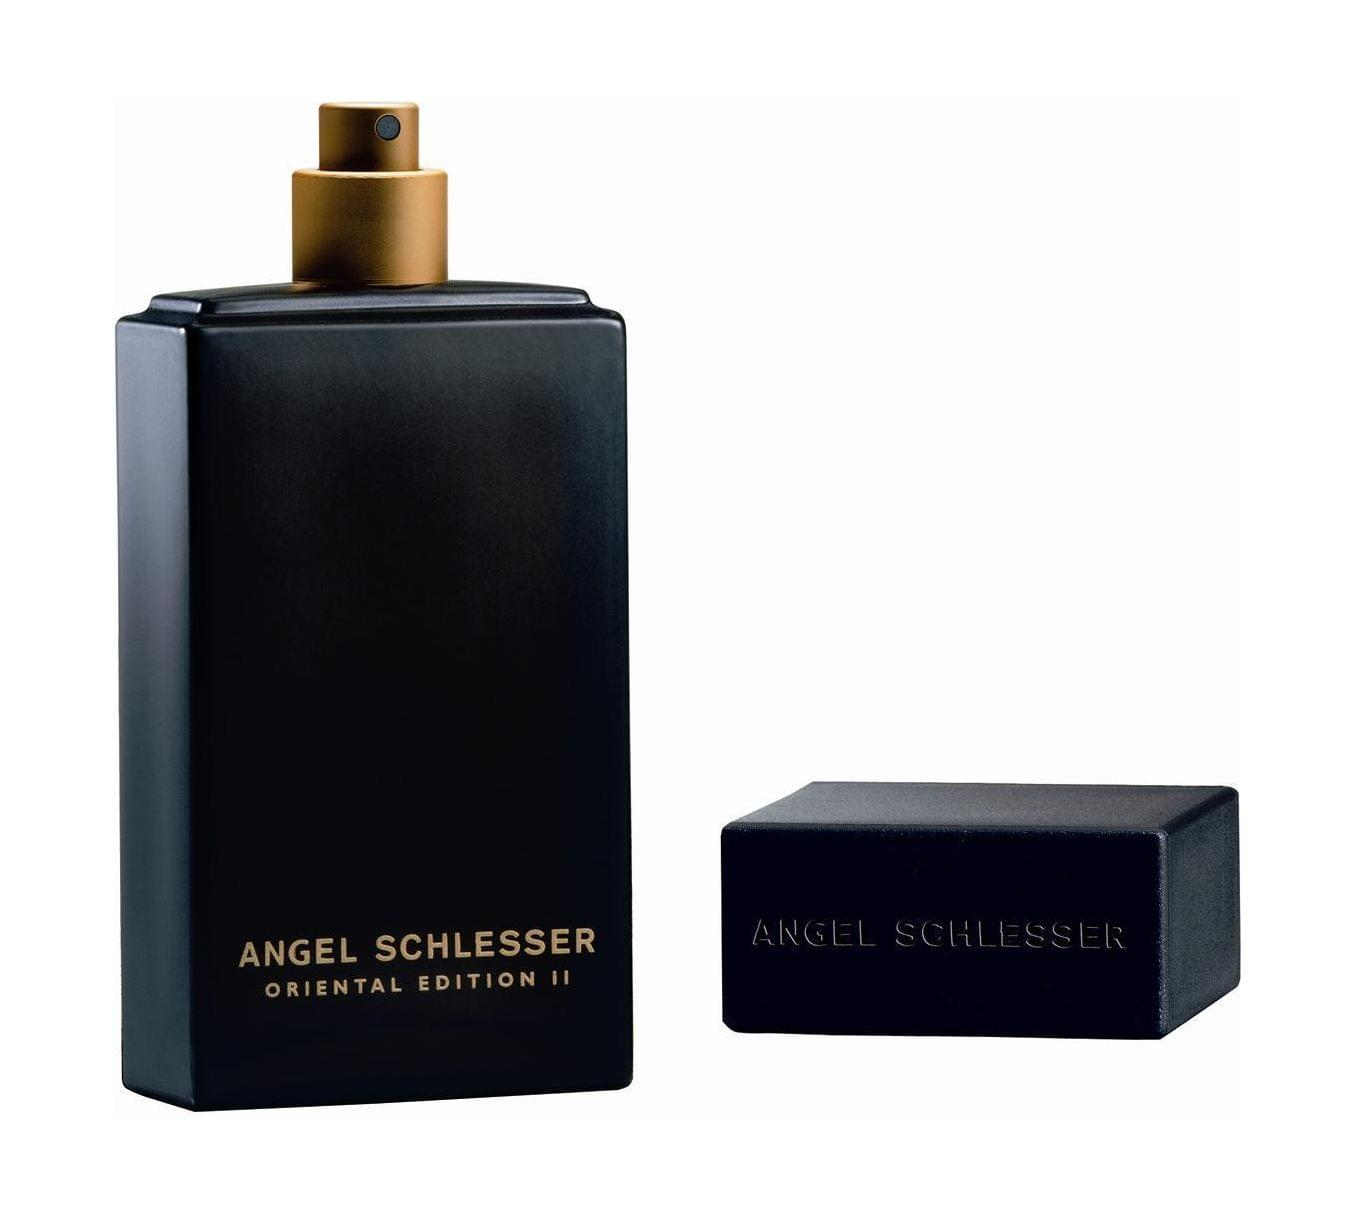 Nước Hoa Angel Schlesser Angel Schlesser Oriental Edition II EDT 100ml